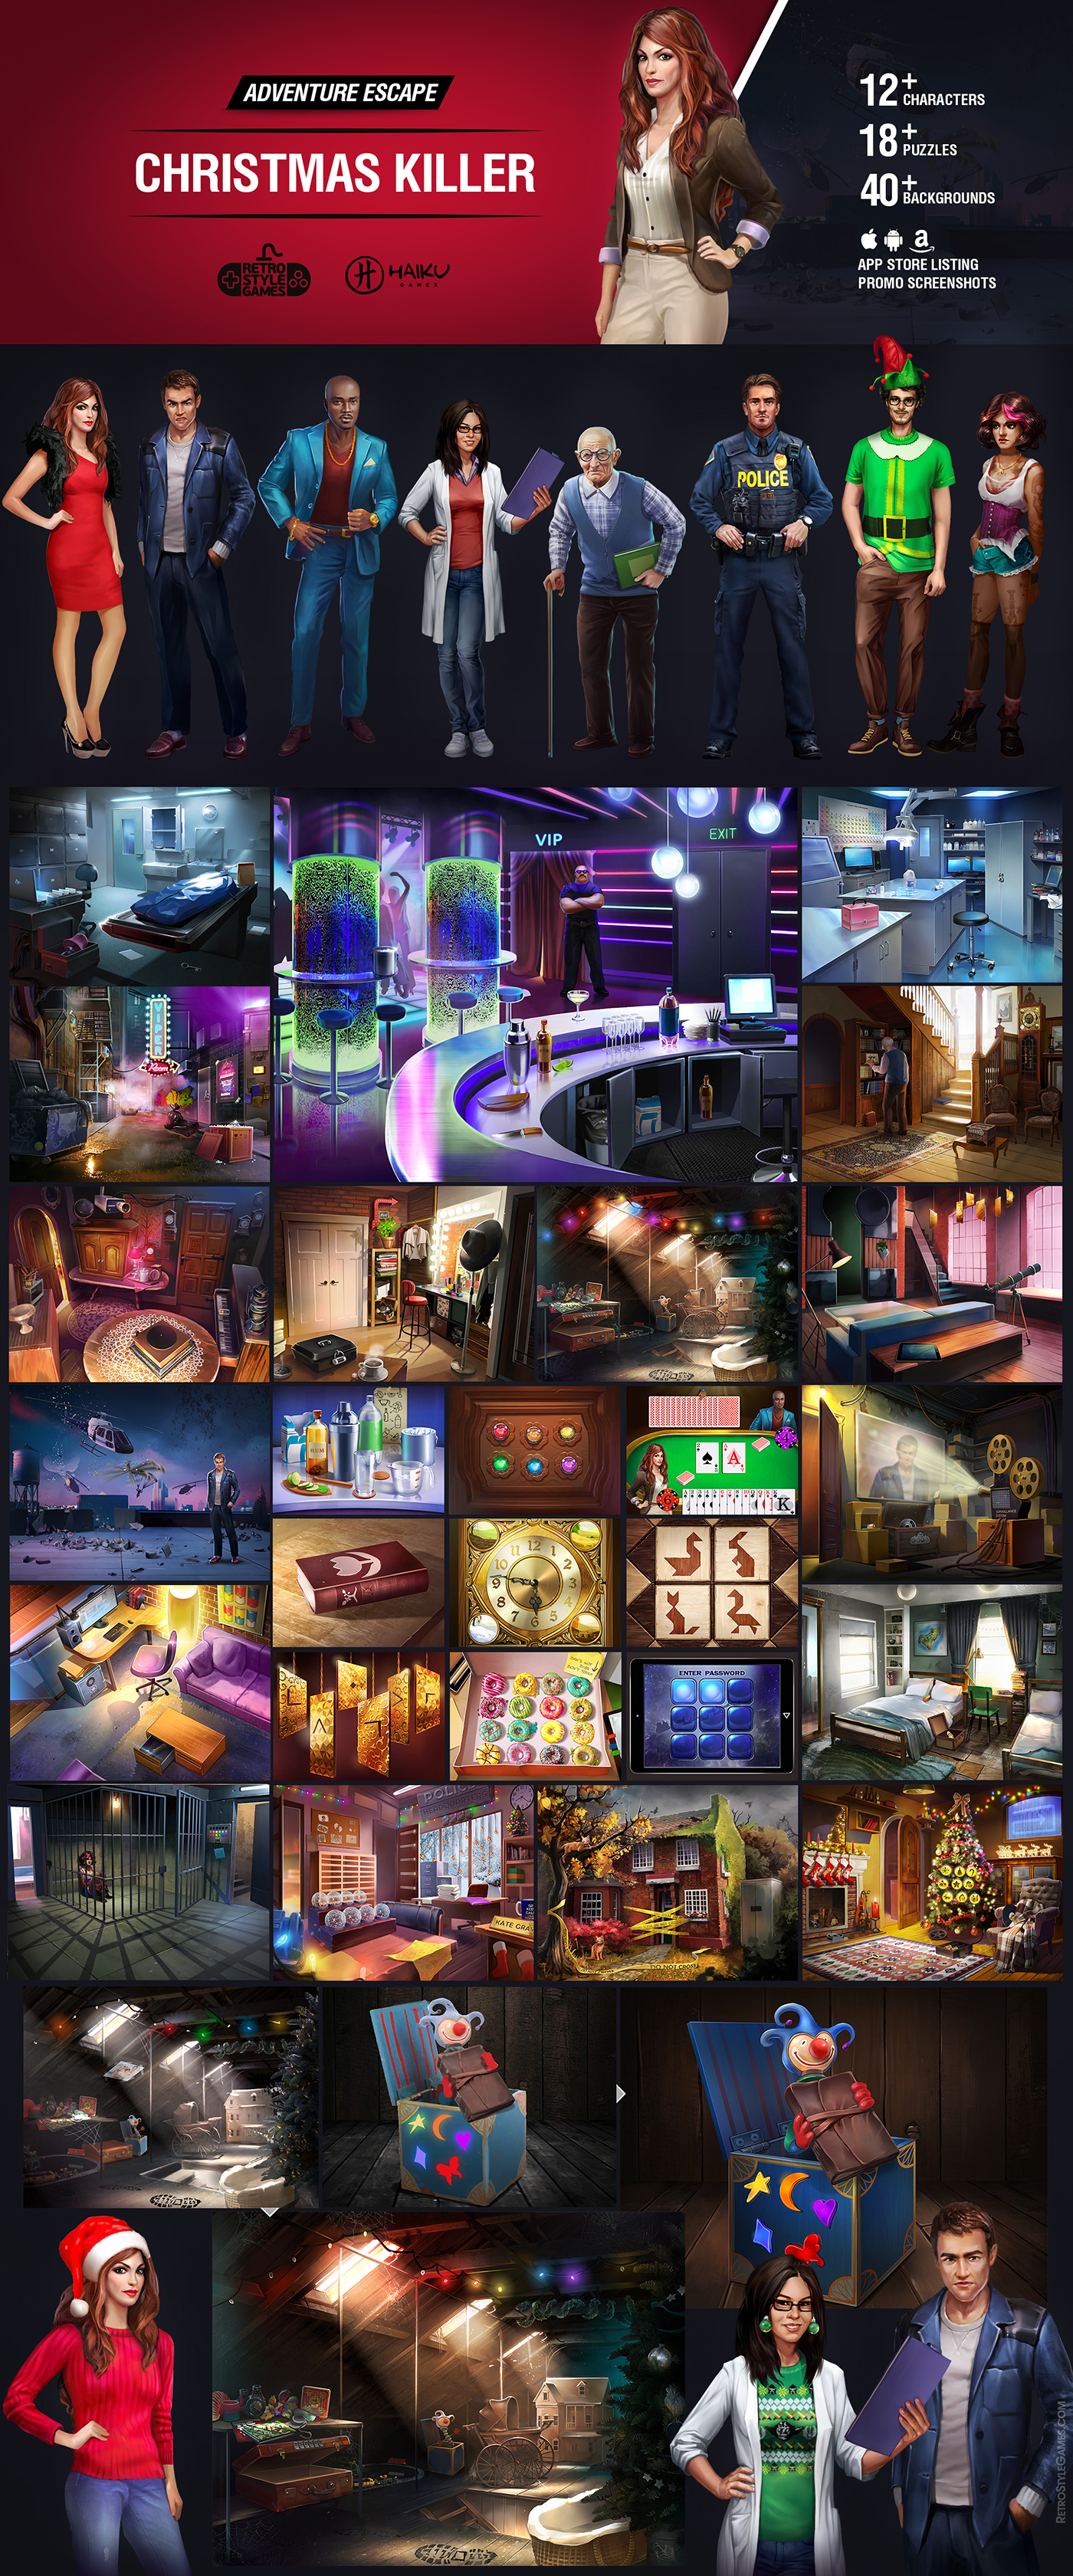 quest adventure escape HOG hidden object inventory characters mobile room